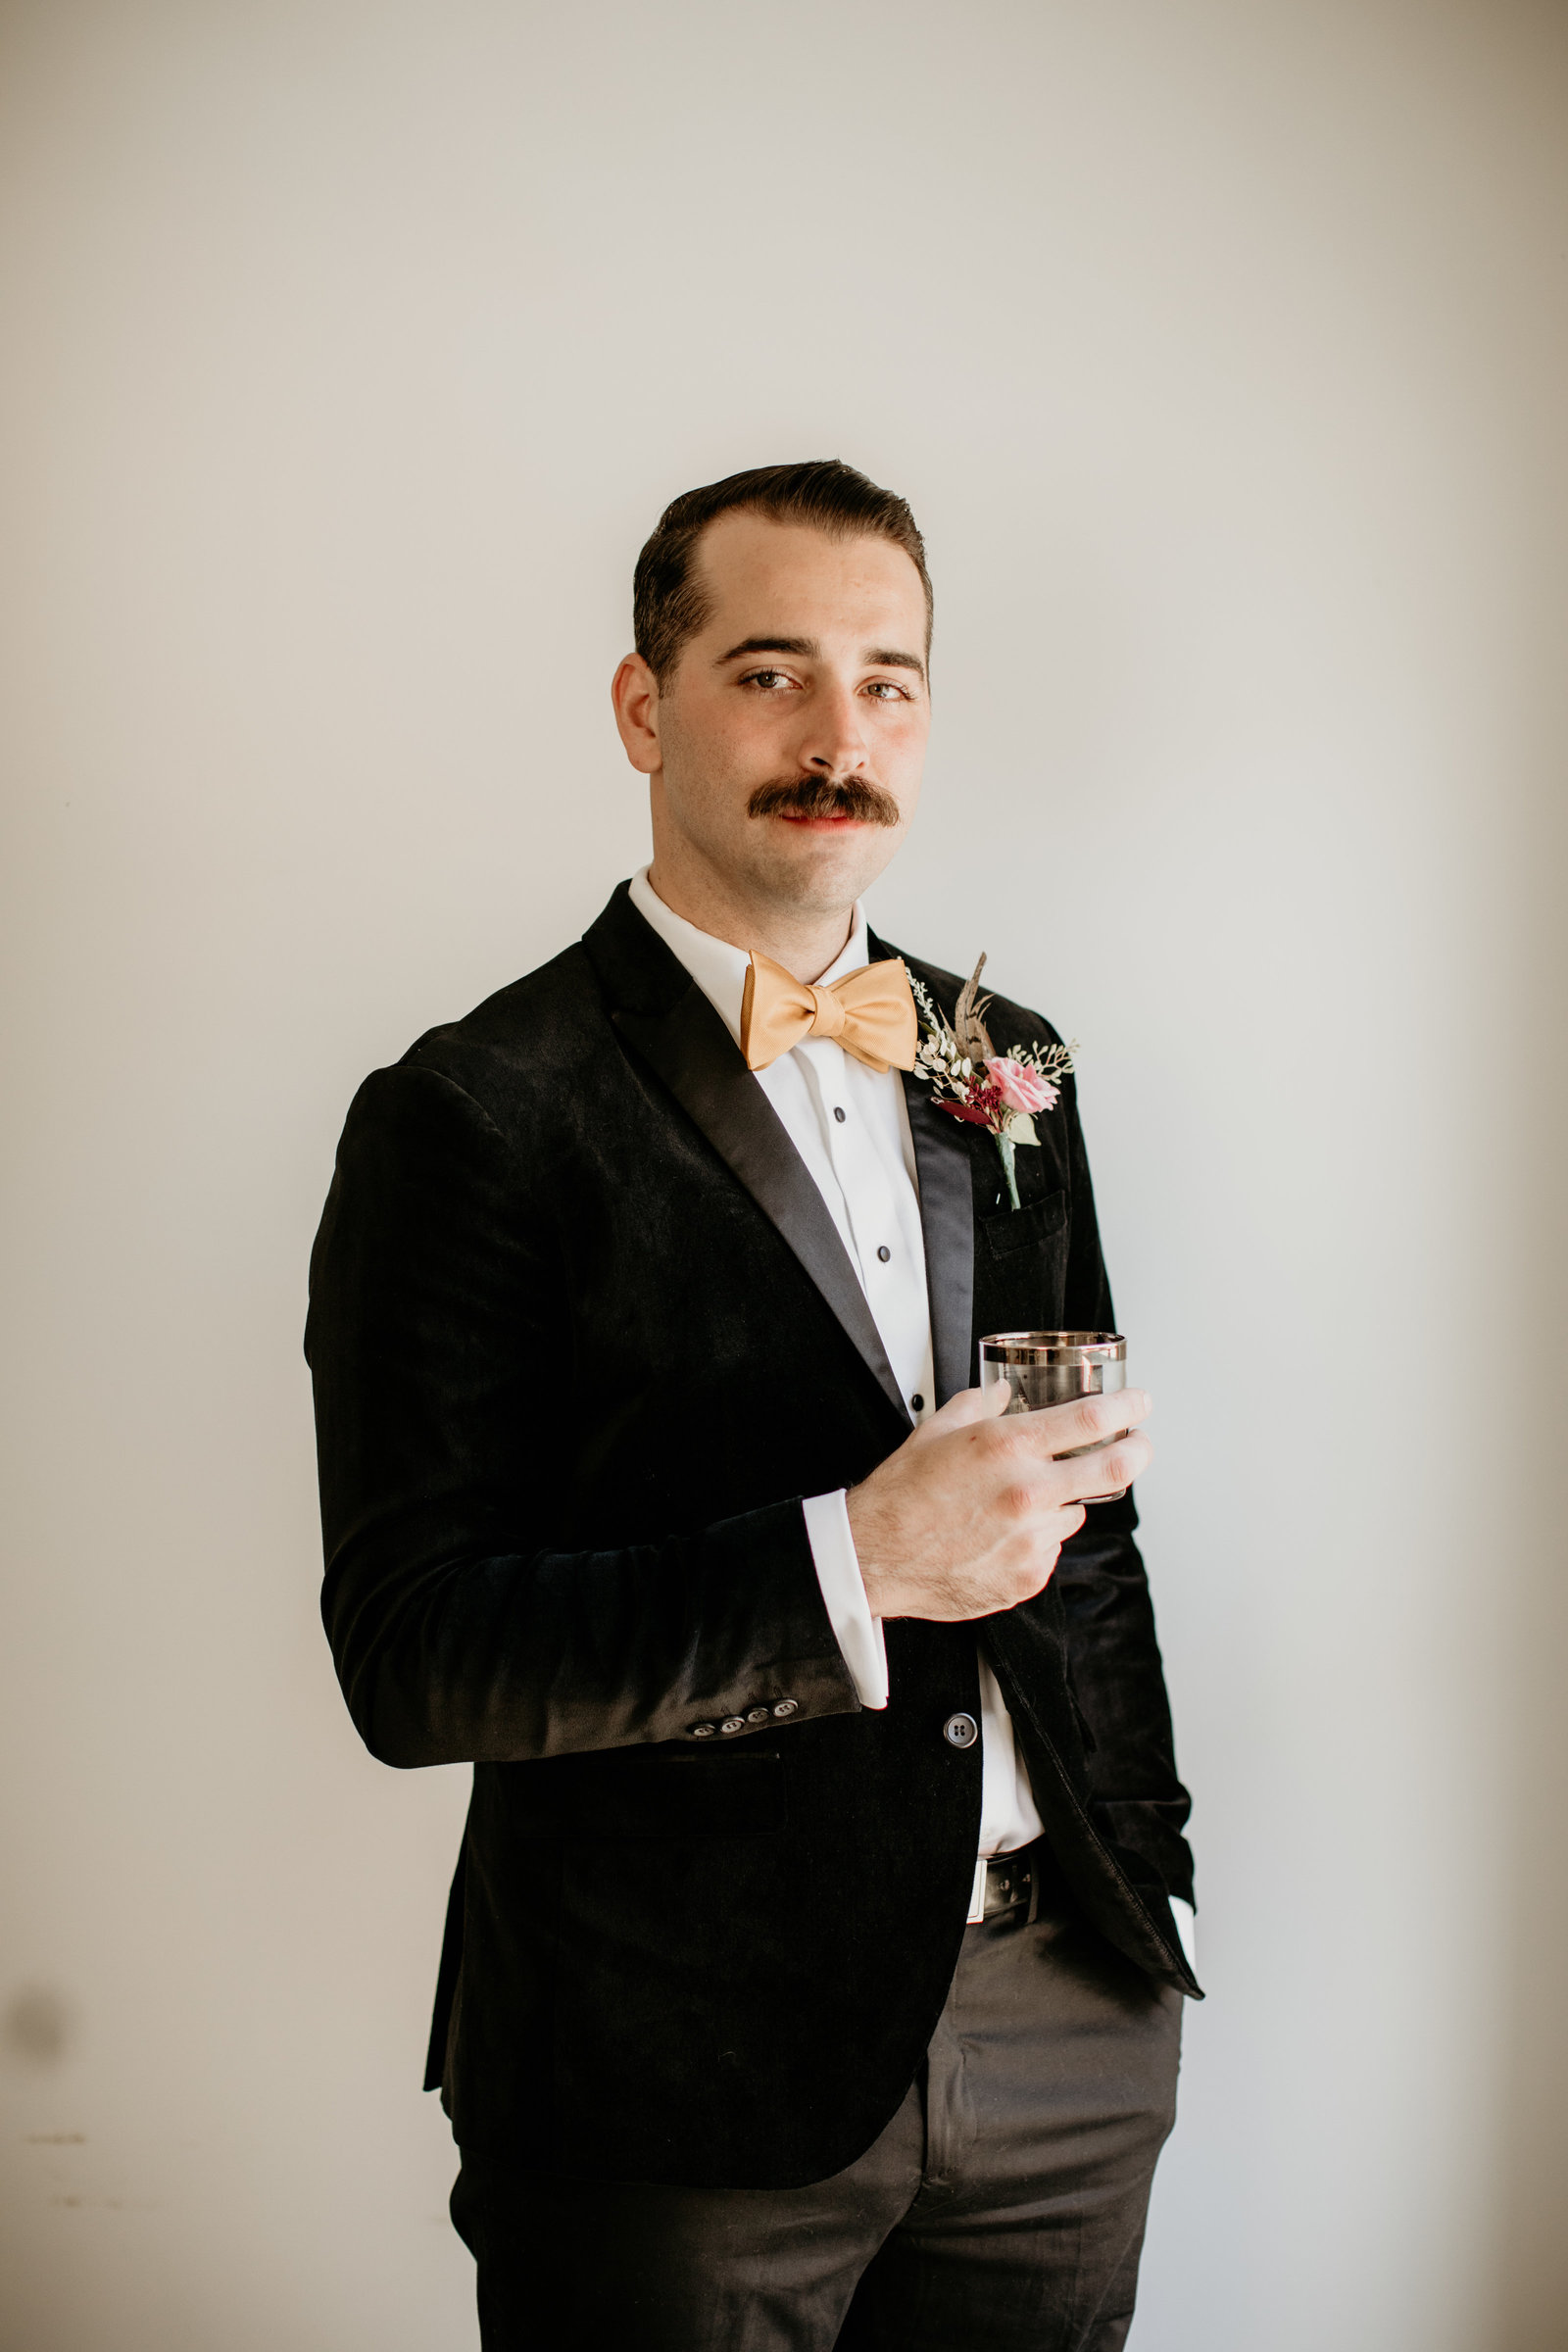 Groom poses for a photo.